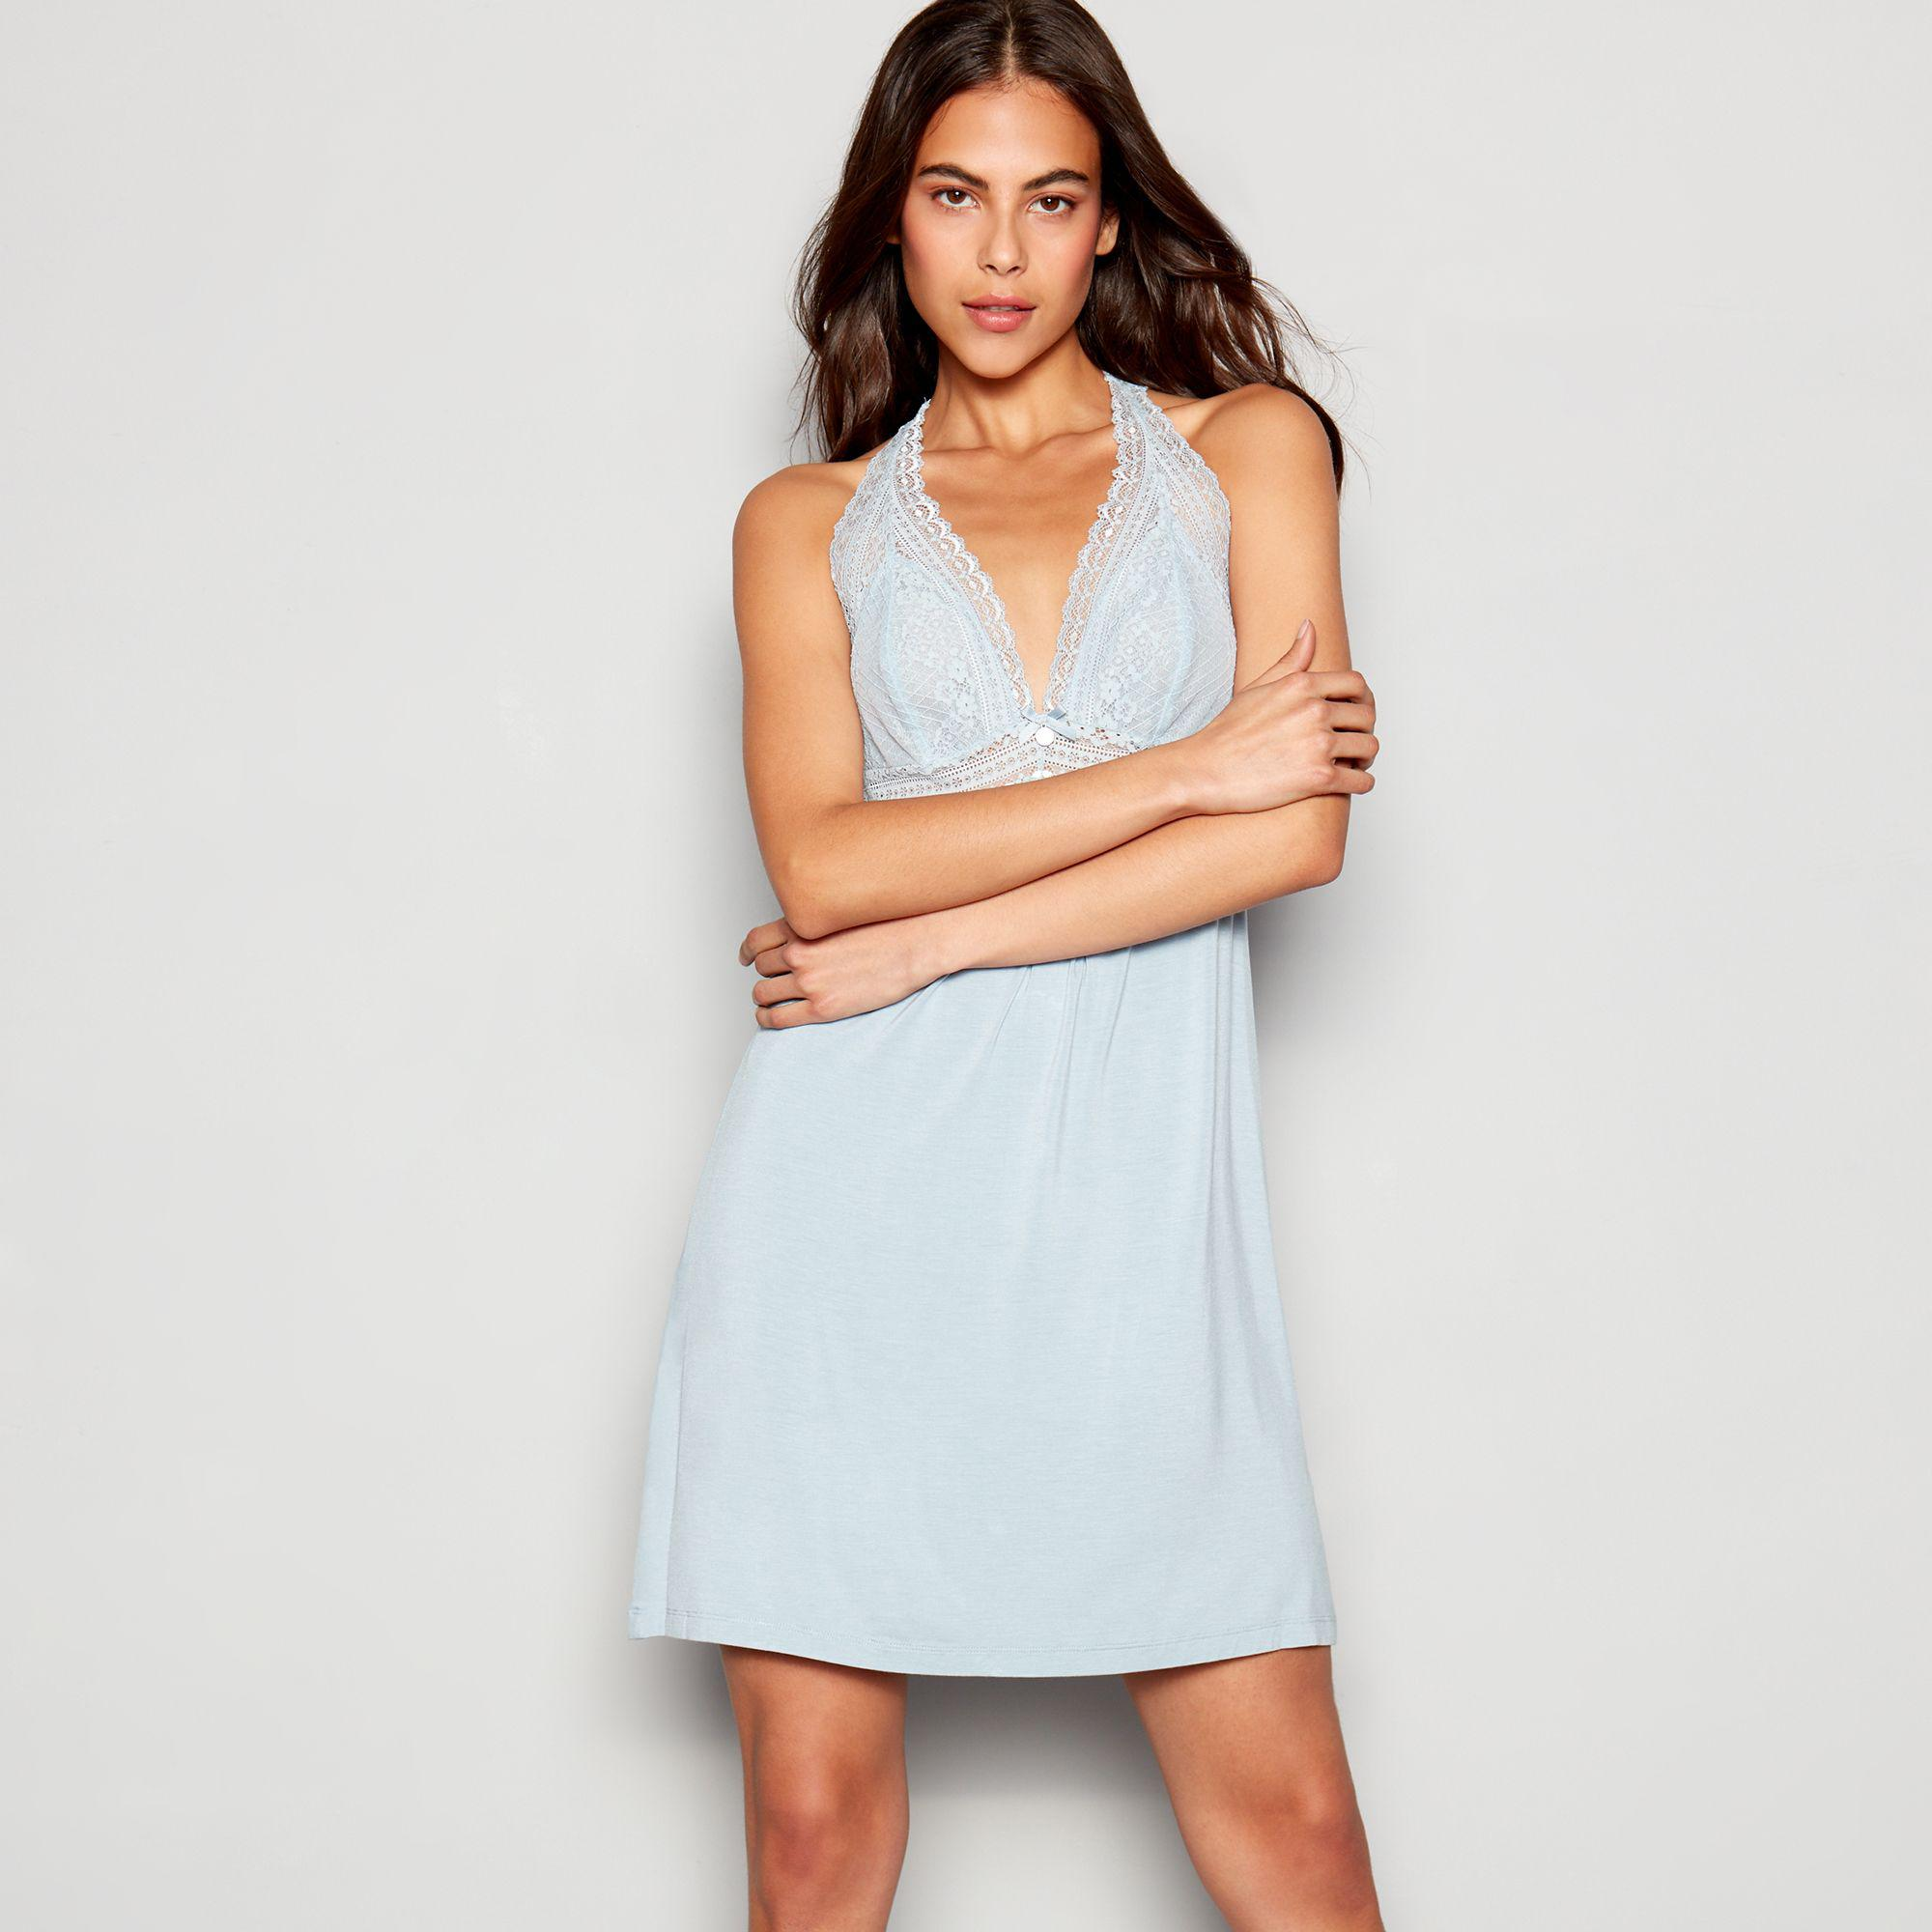 ee5edabad31 J By Jasper Conran Light Blue Lace  archive  Chemise in Blue - Lyst